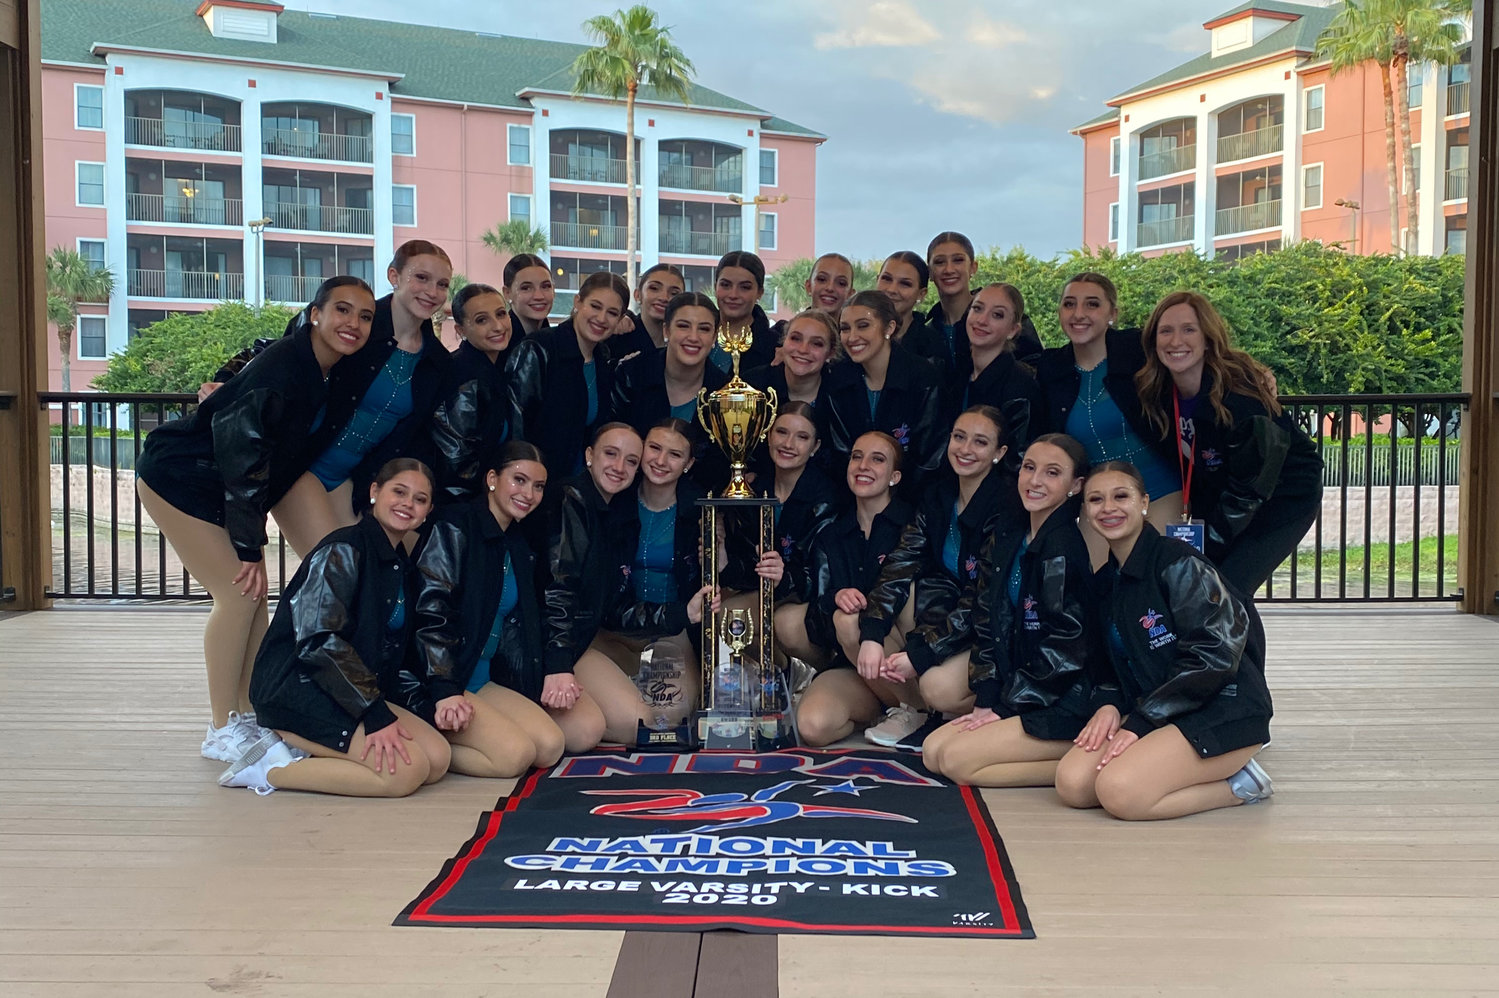 The Mepham Pirettes won their first national championship in program history this year at the World Disney World Resort in Florida.